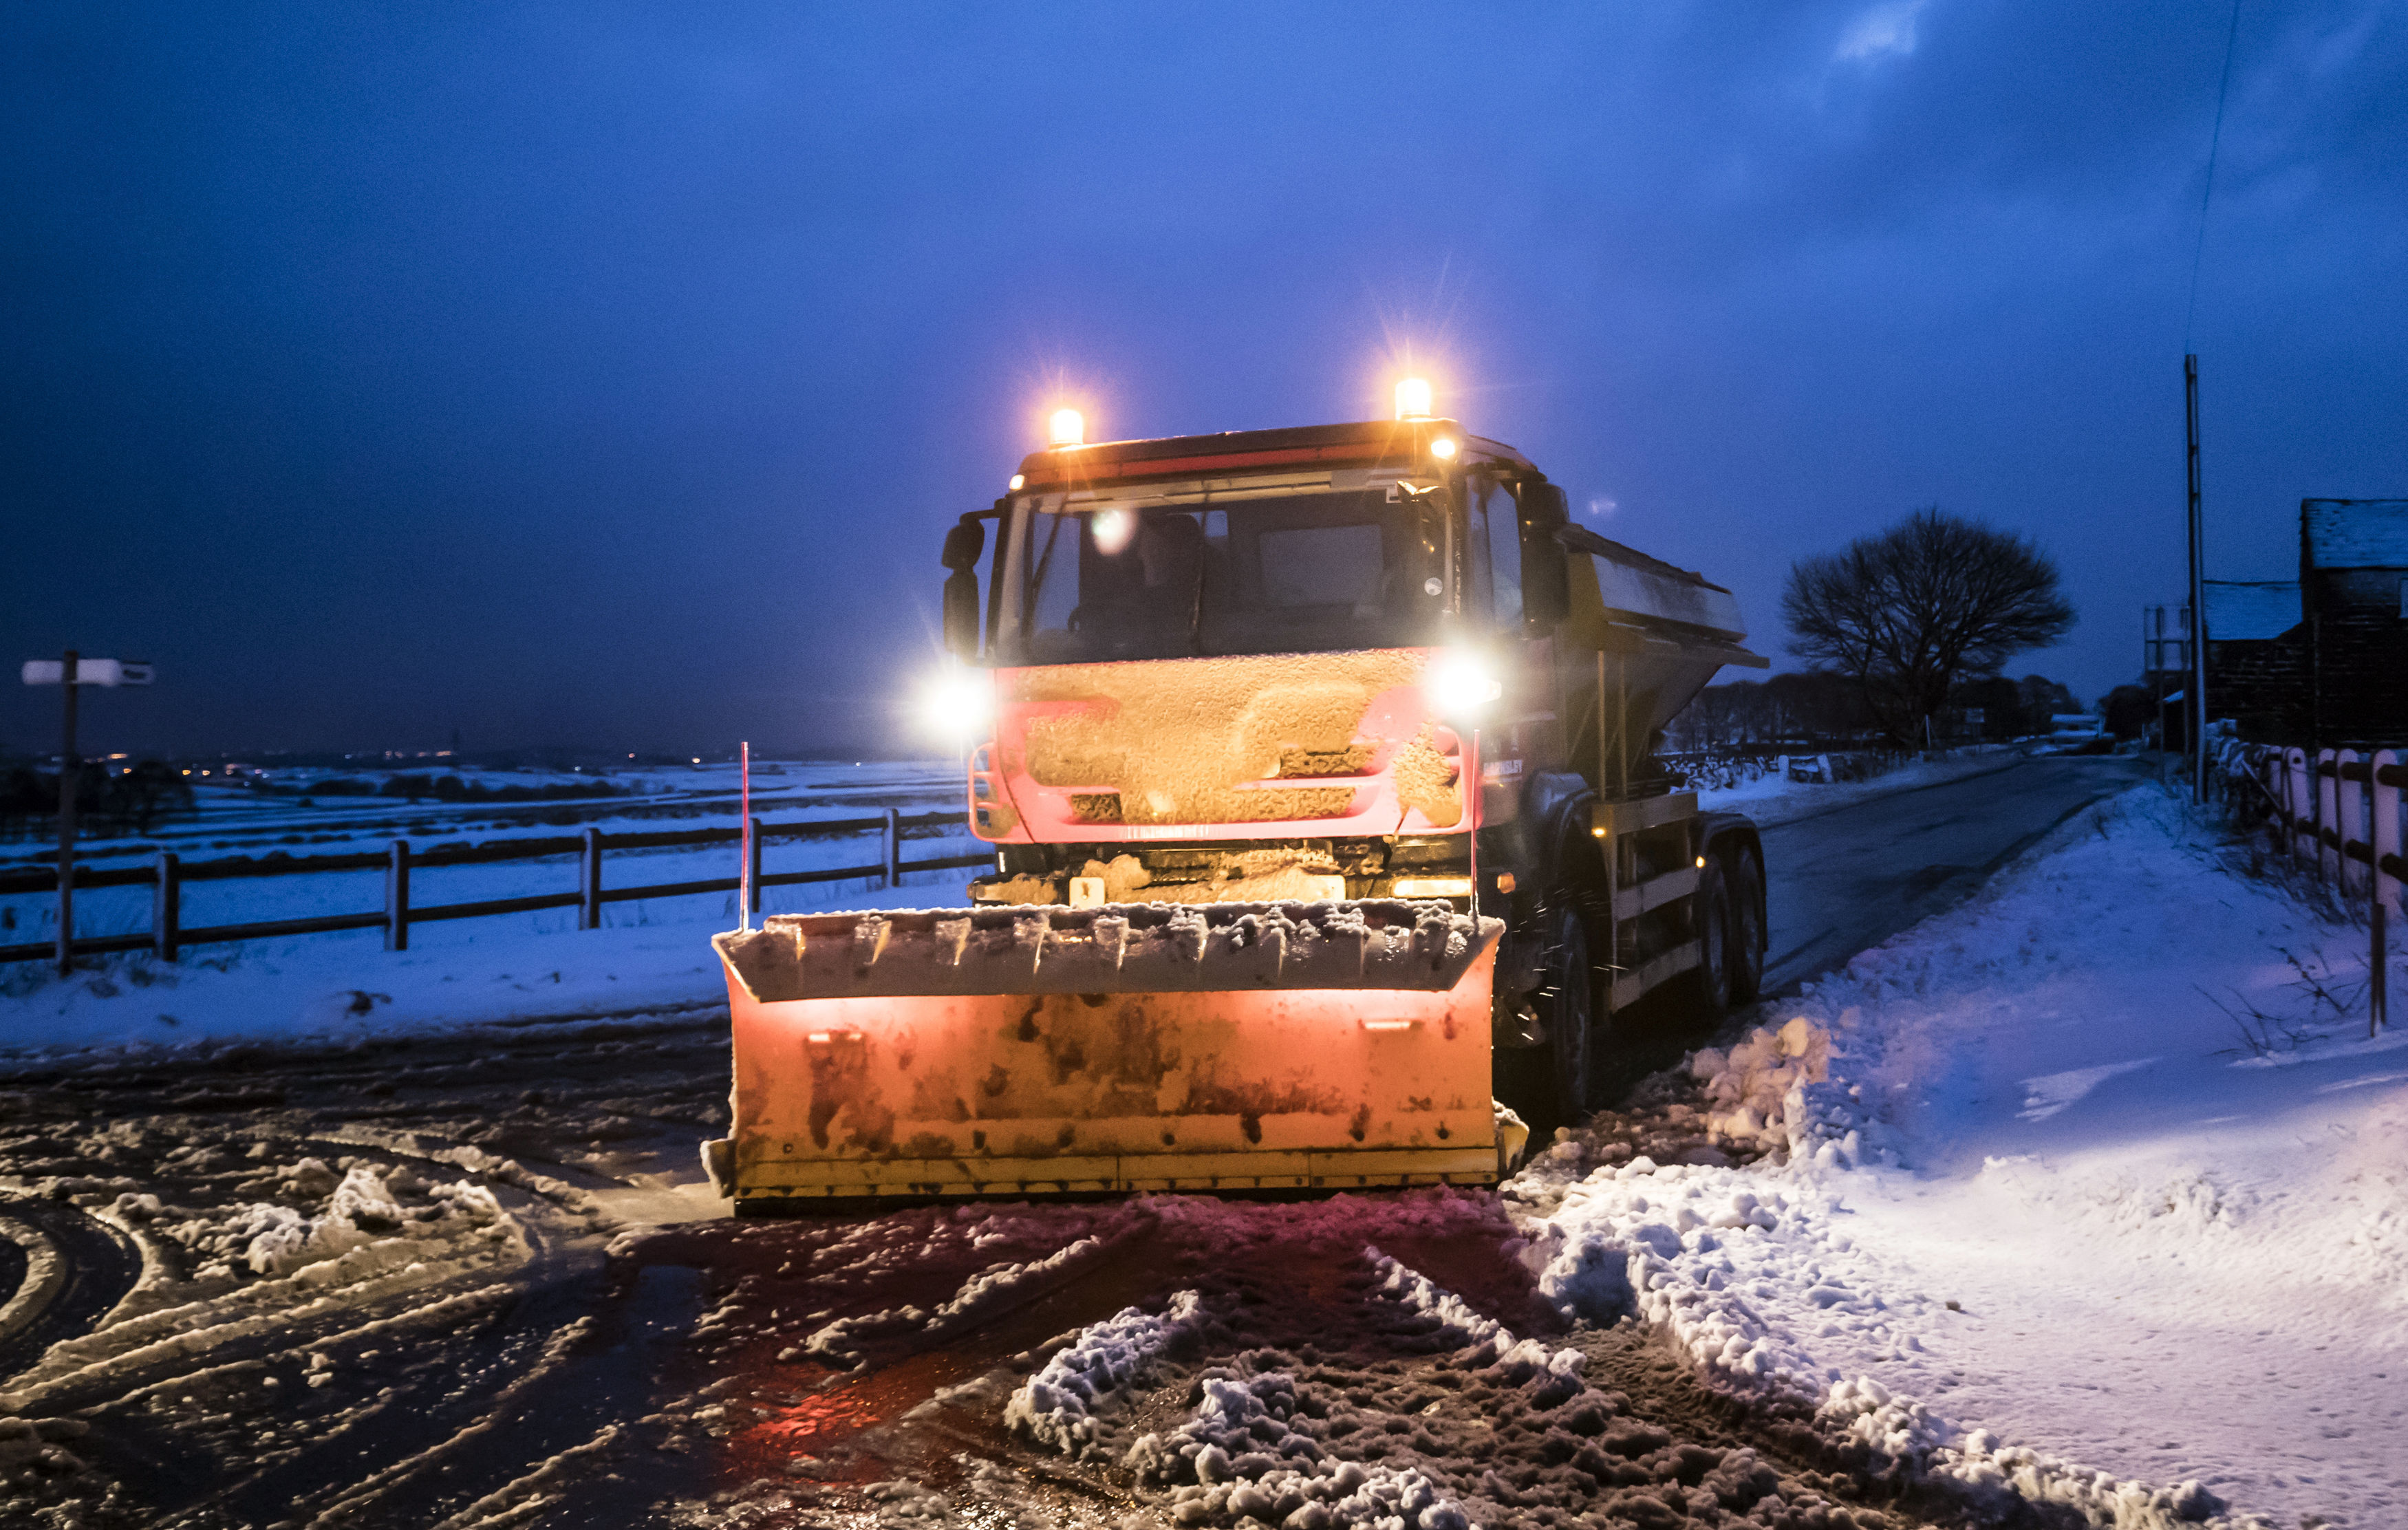 Drivers warned 'stay off roads' as heavy snow forecast